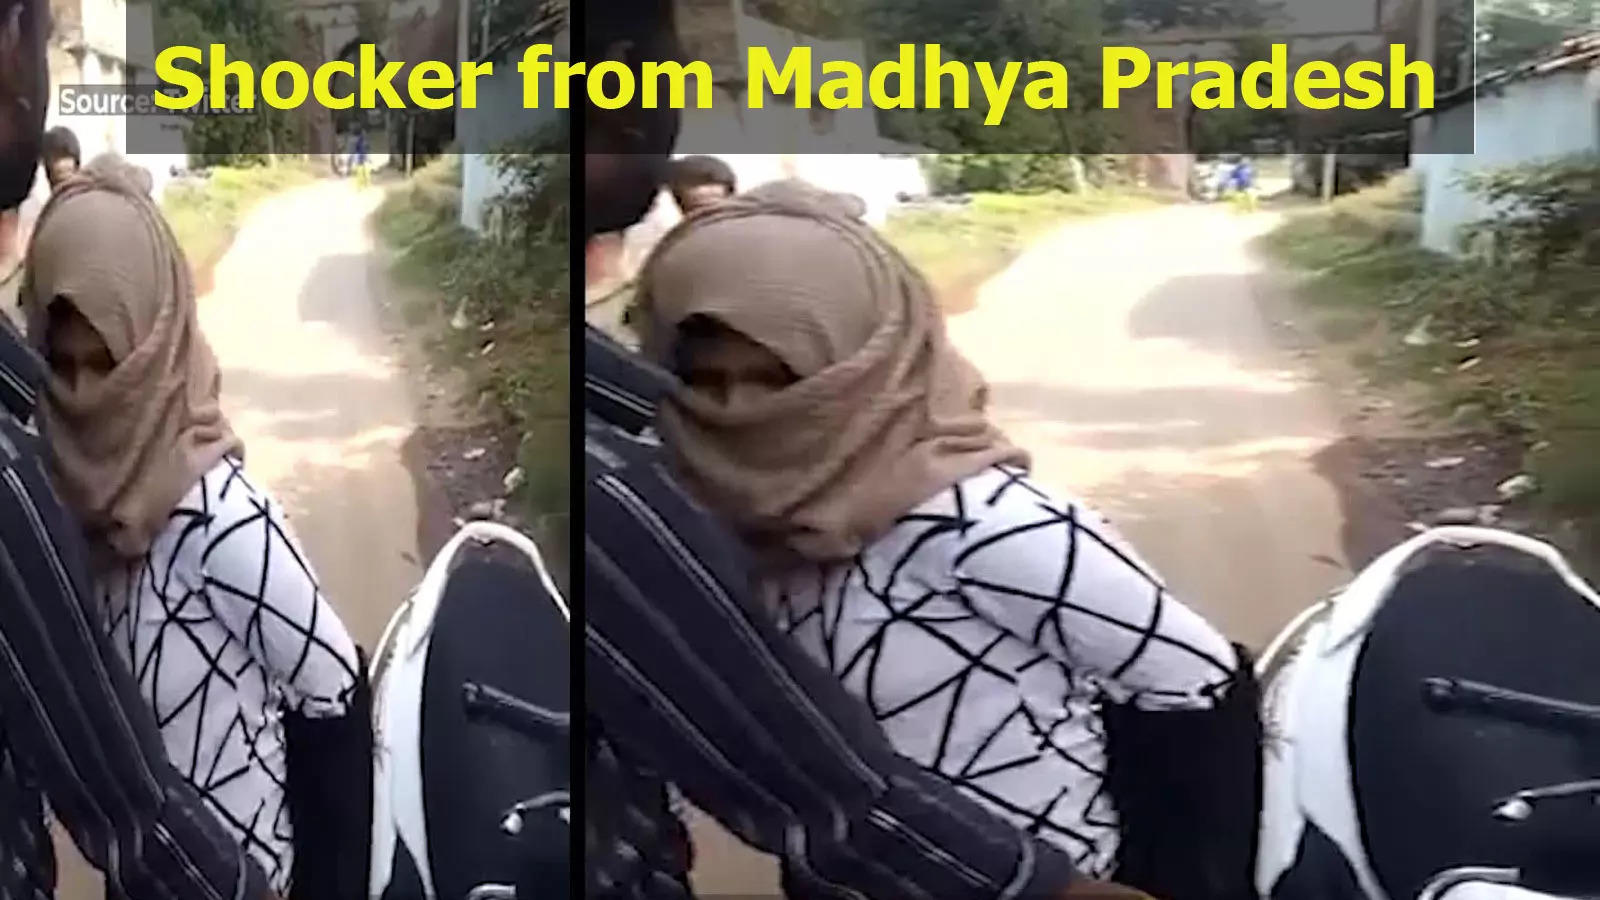 viral-video-woman-forced-to-remover-burqa-and-hijab-by-mob-in-madhya-pradesh